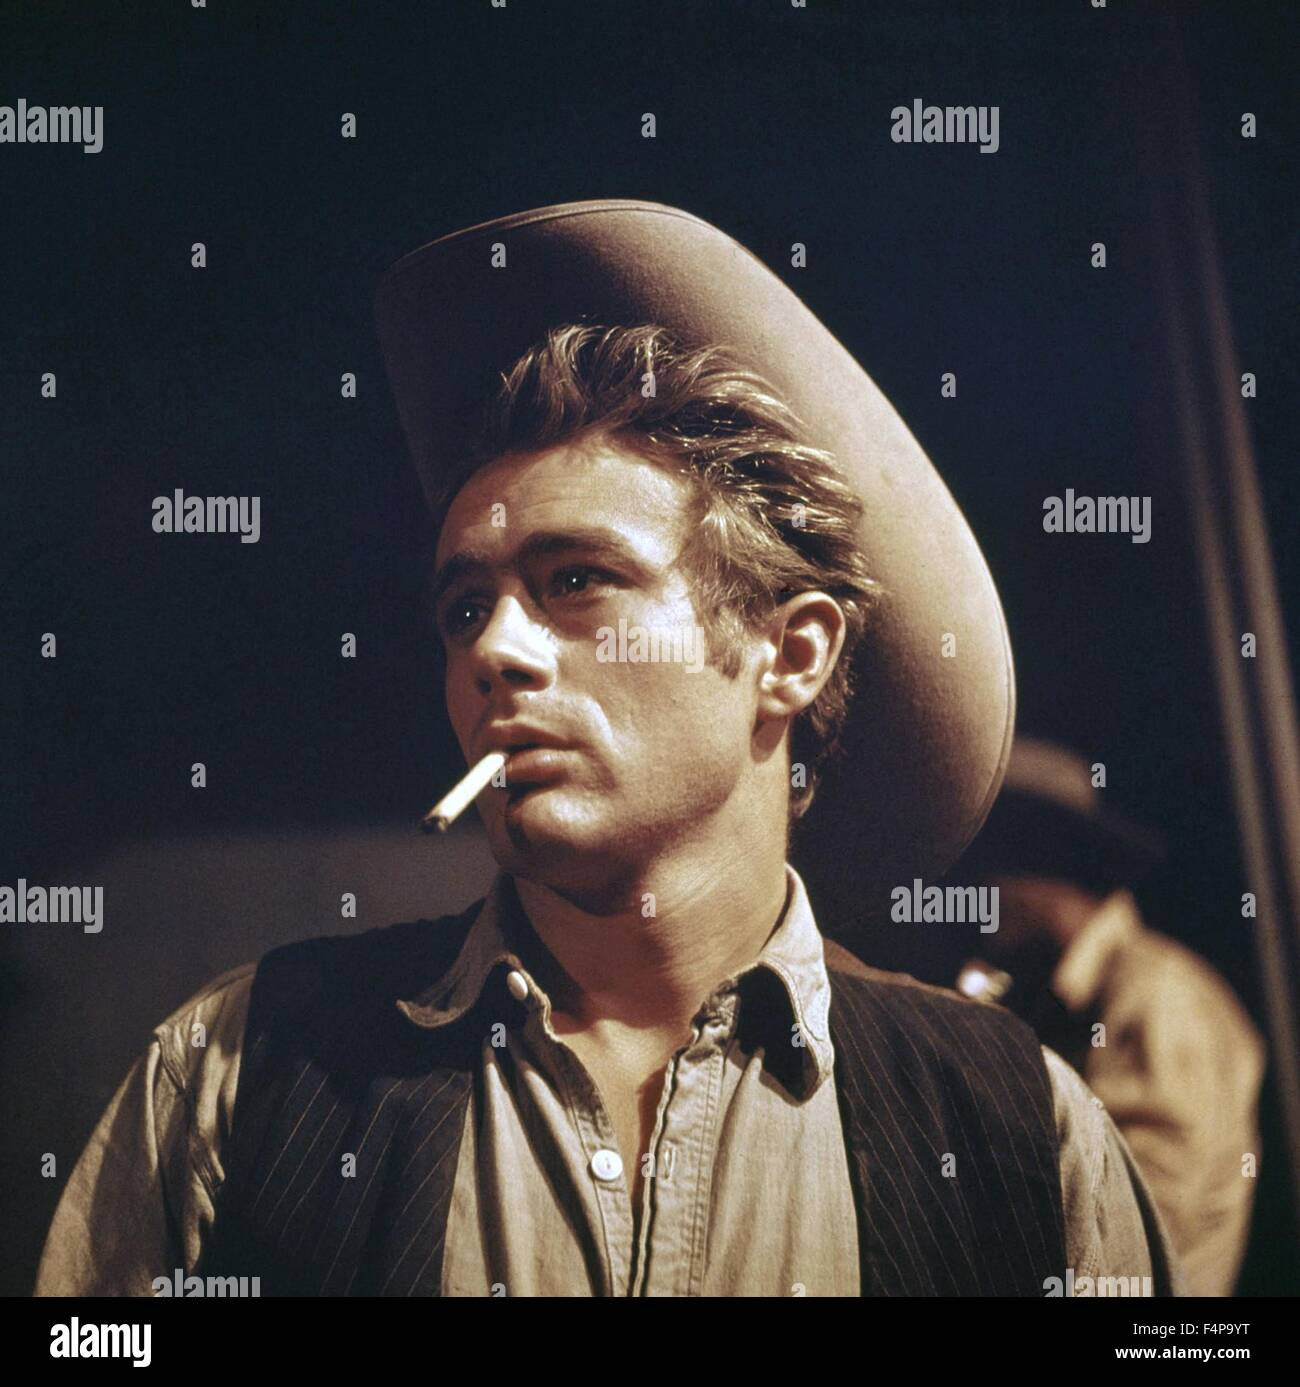 James Dean / Giant 1955 directed by George Stevens - Stock Image